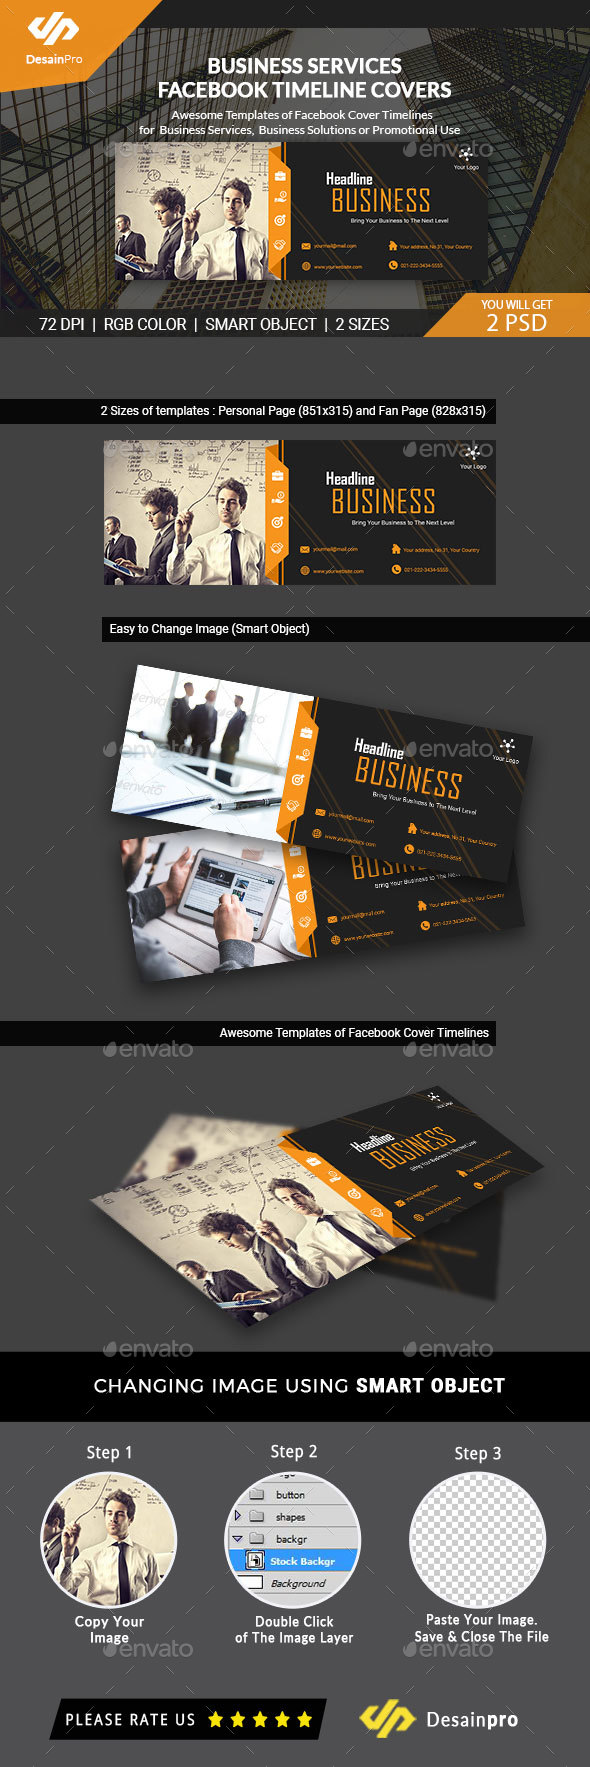 Business Solutions FB Cover Timeline - AR - Facebook Timeline Covers Social Media